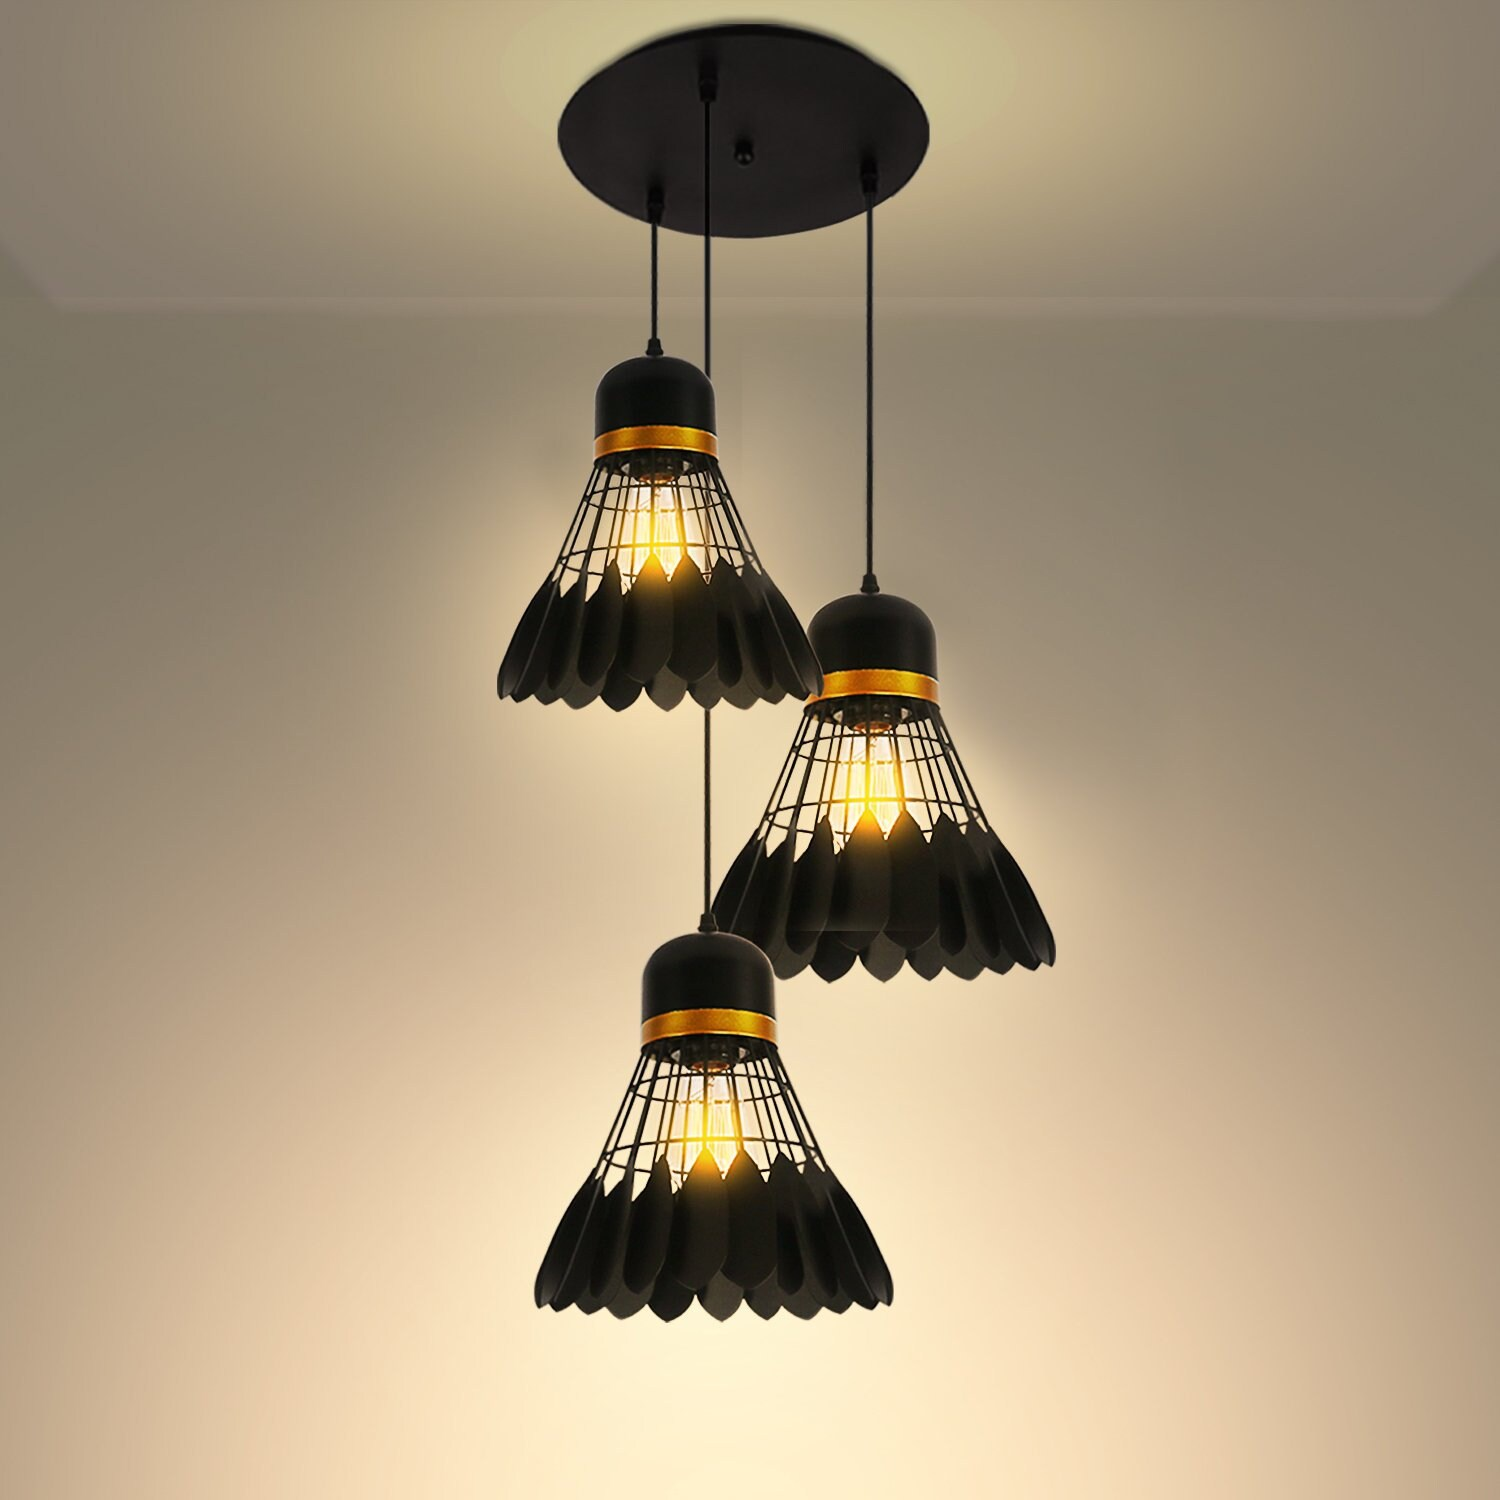 Lampe Suspension Style Industriel Lampe Suspension De Style Industriel 3 Lumières Cuisine îlot